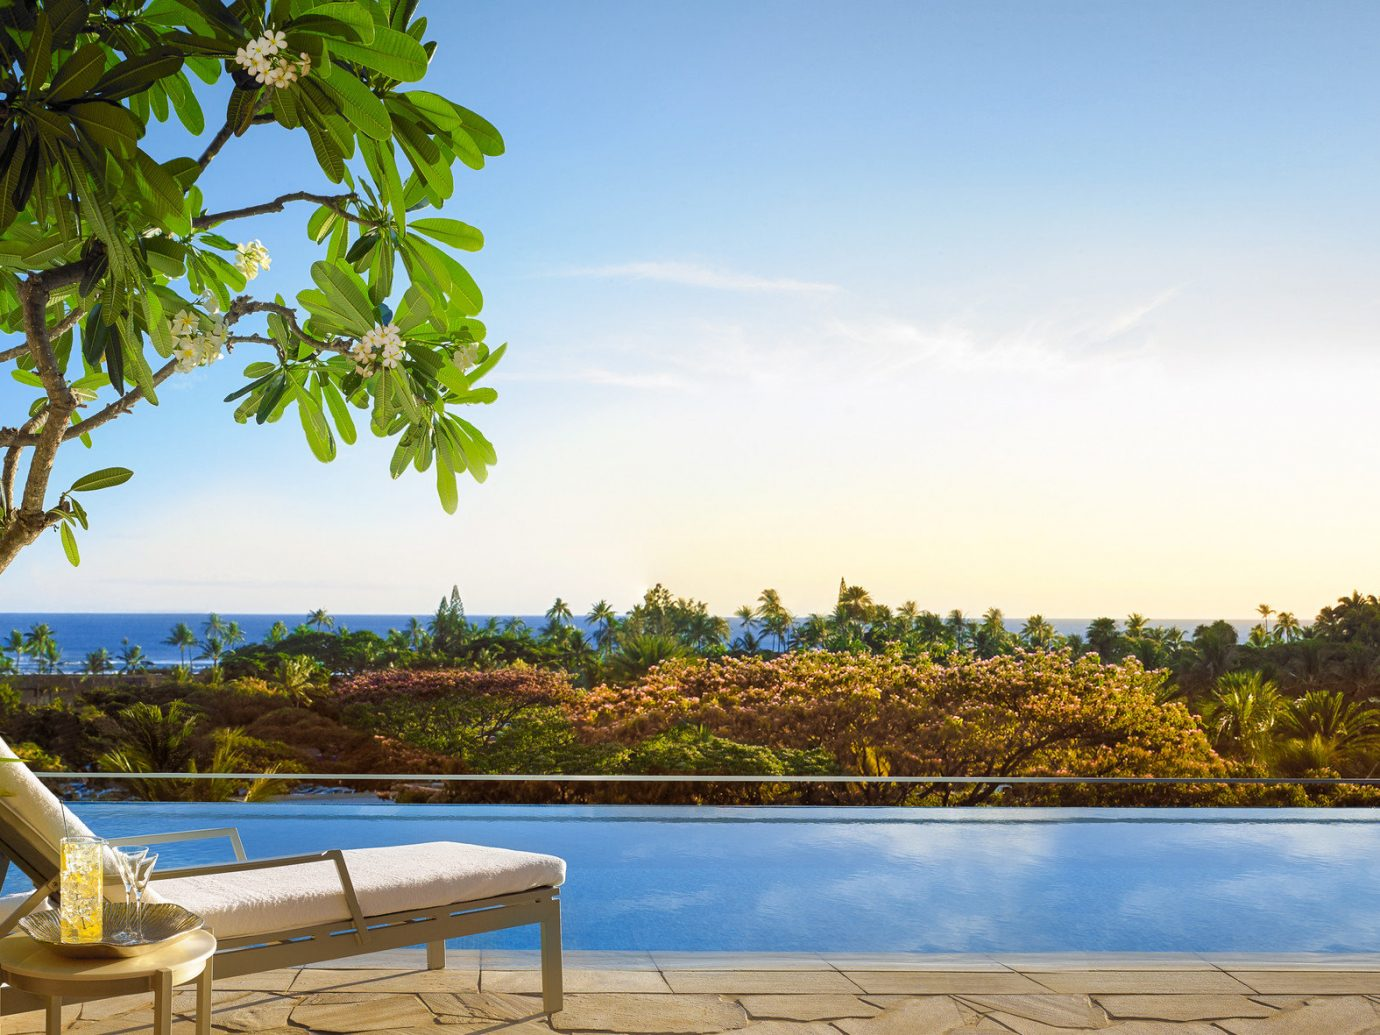 Hotels Romance tree water outdoor sky property swimming pool River vacation estate Resort Lake Sea sunlight arecales Villa overlooking shore